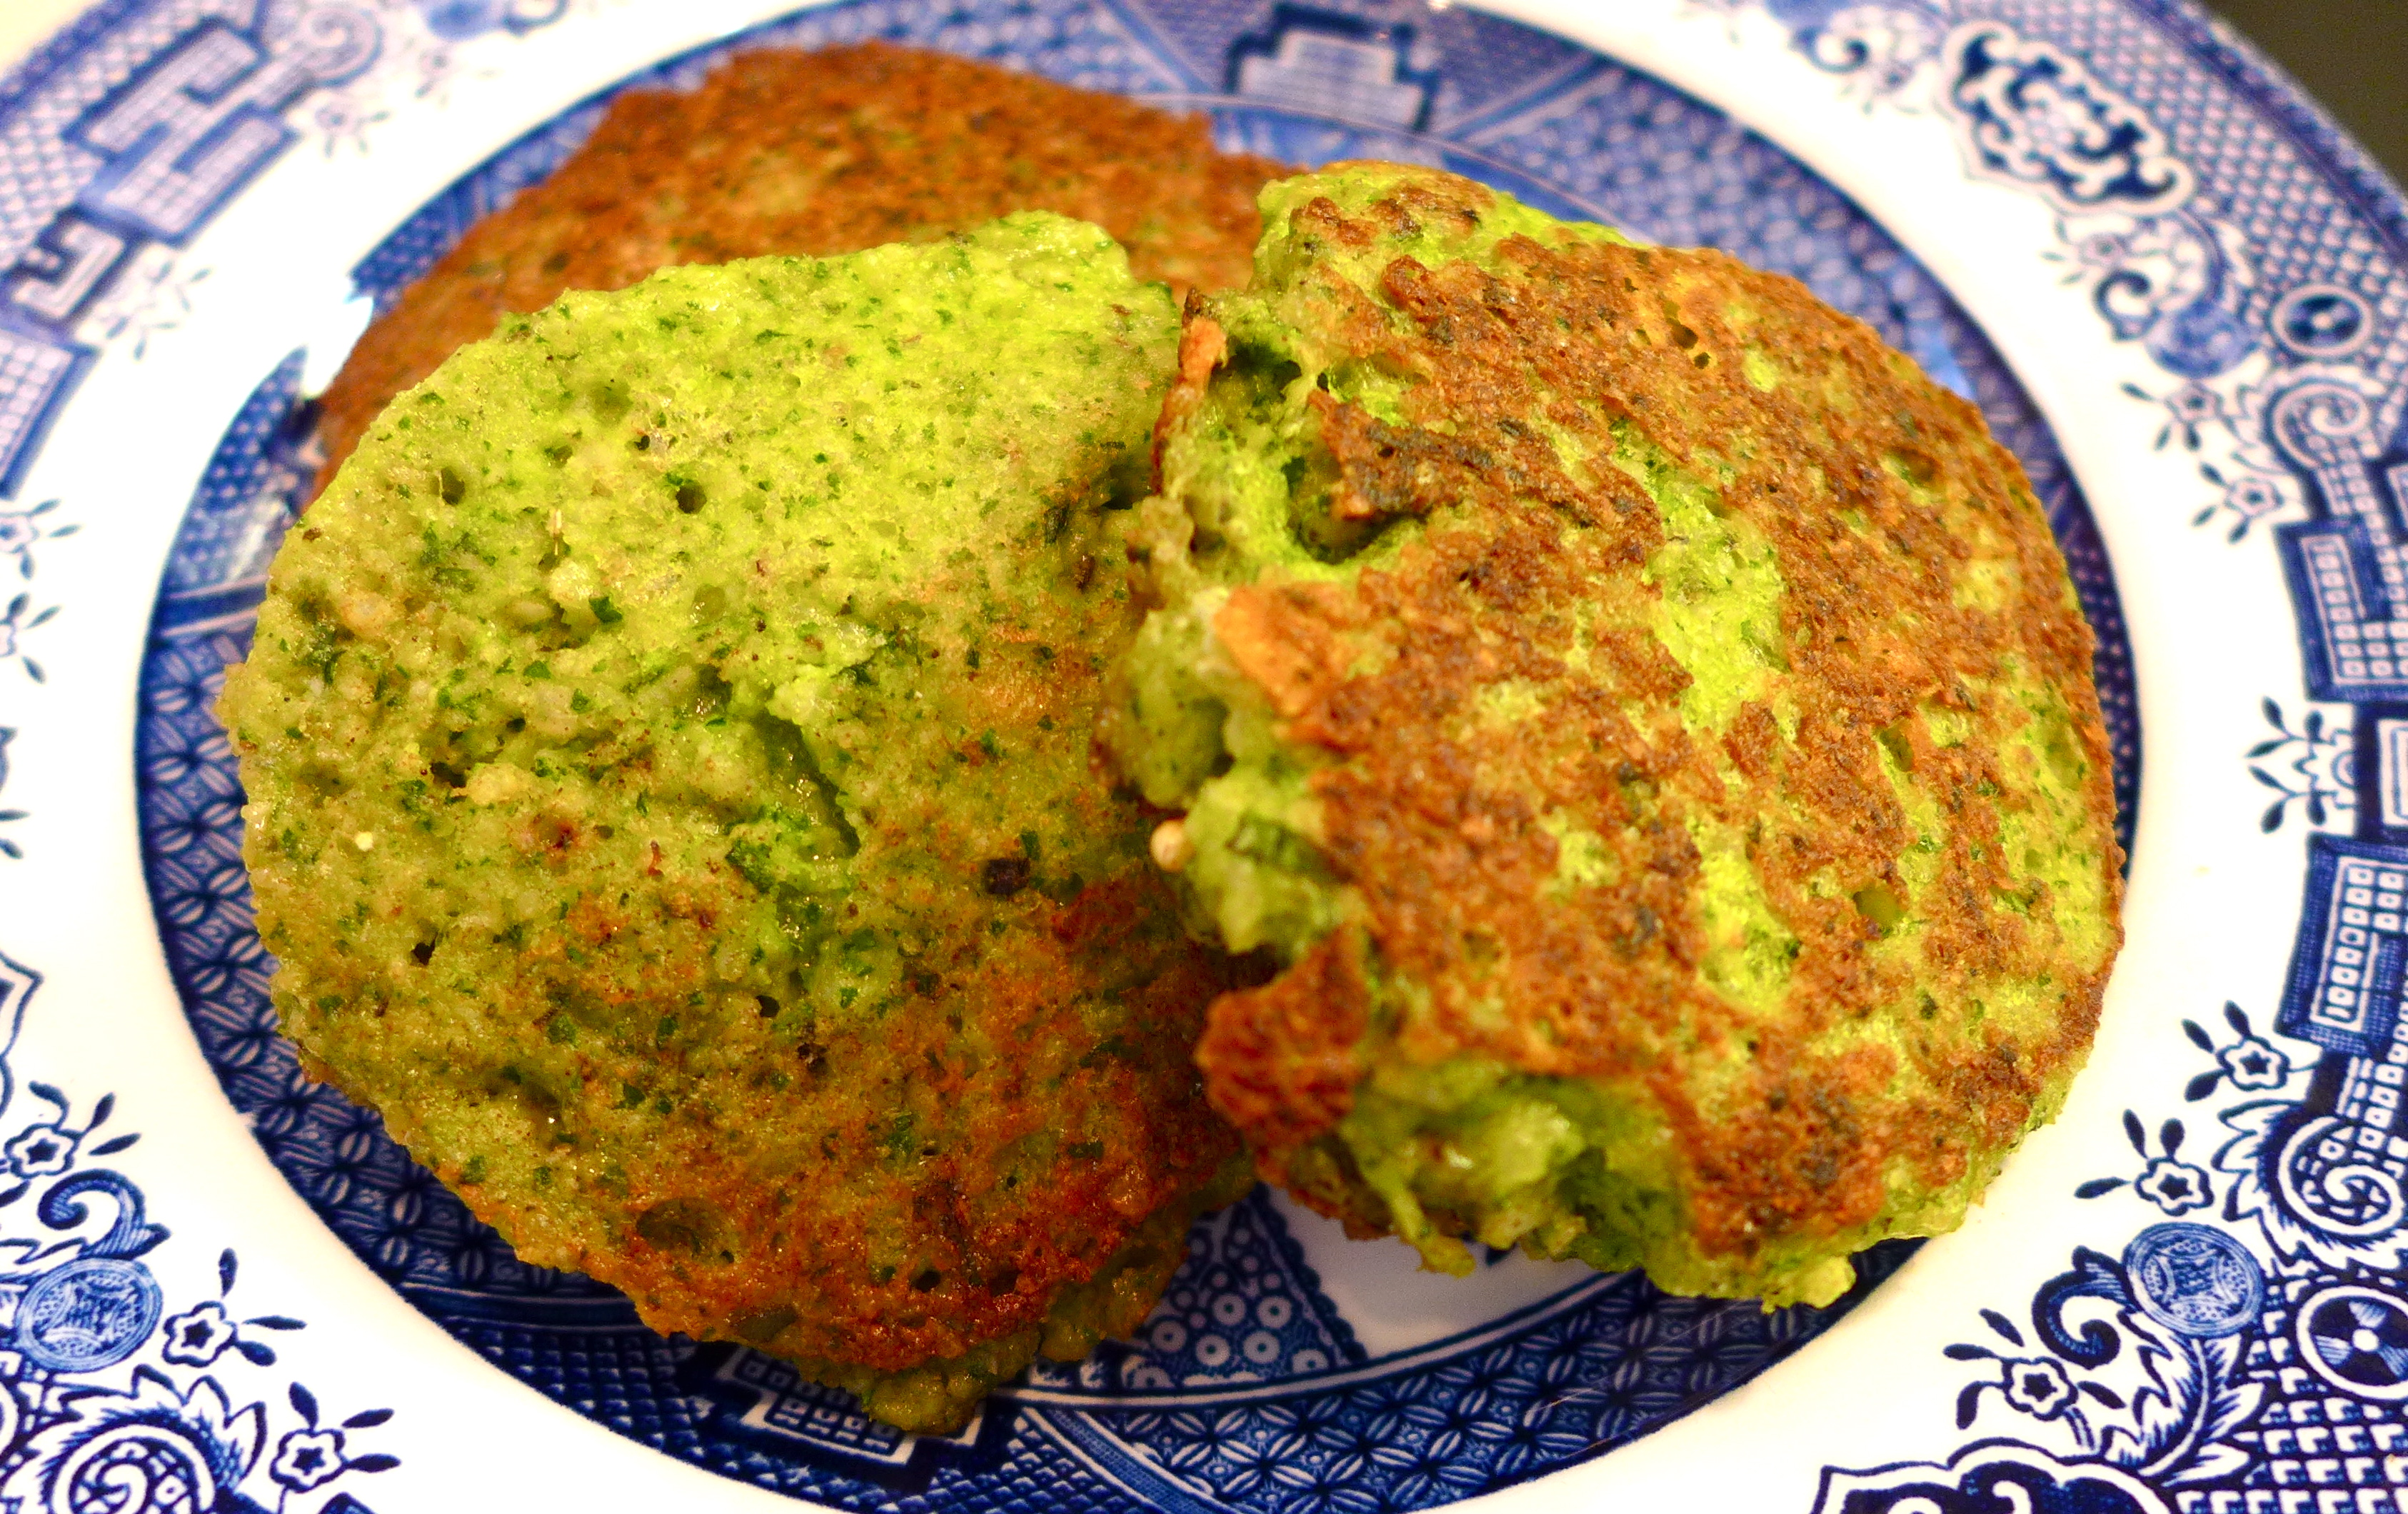 Kale, Chard & Spinach Millet Cakes, Gluten Free